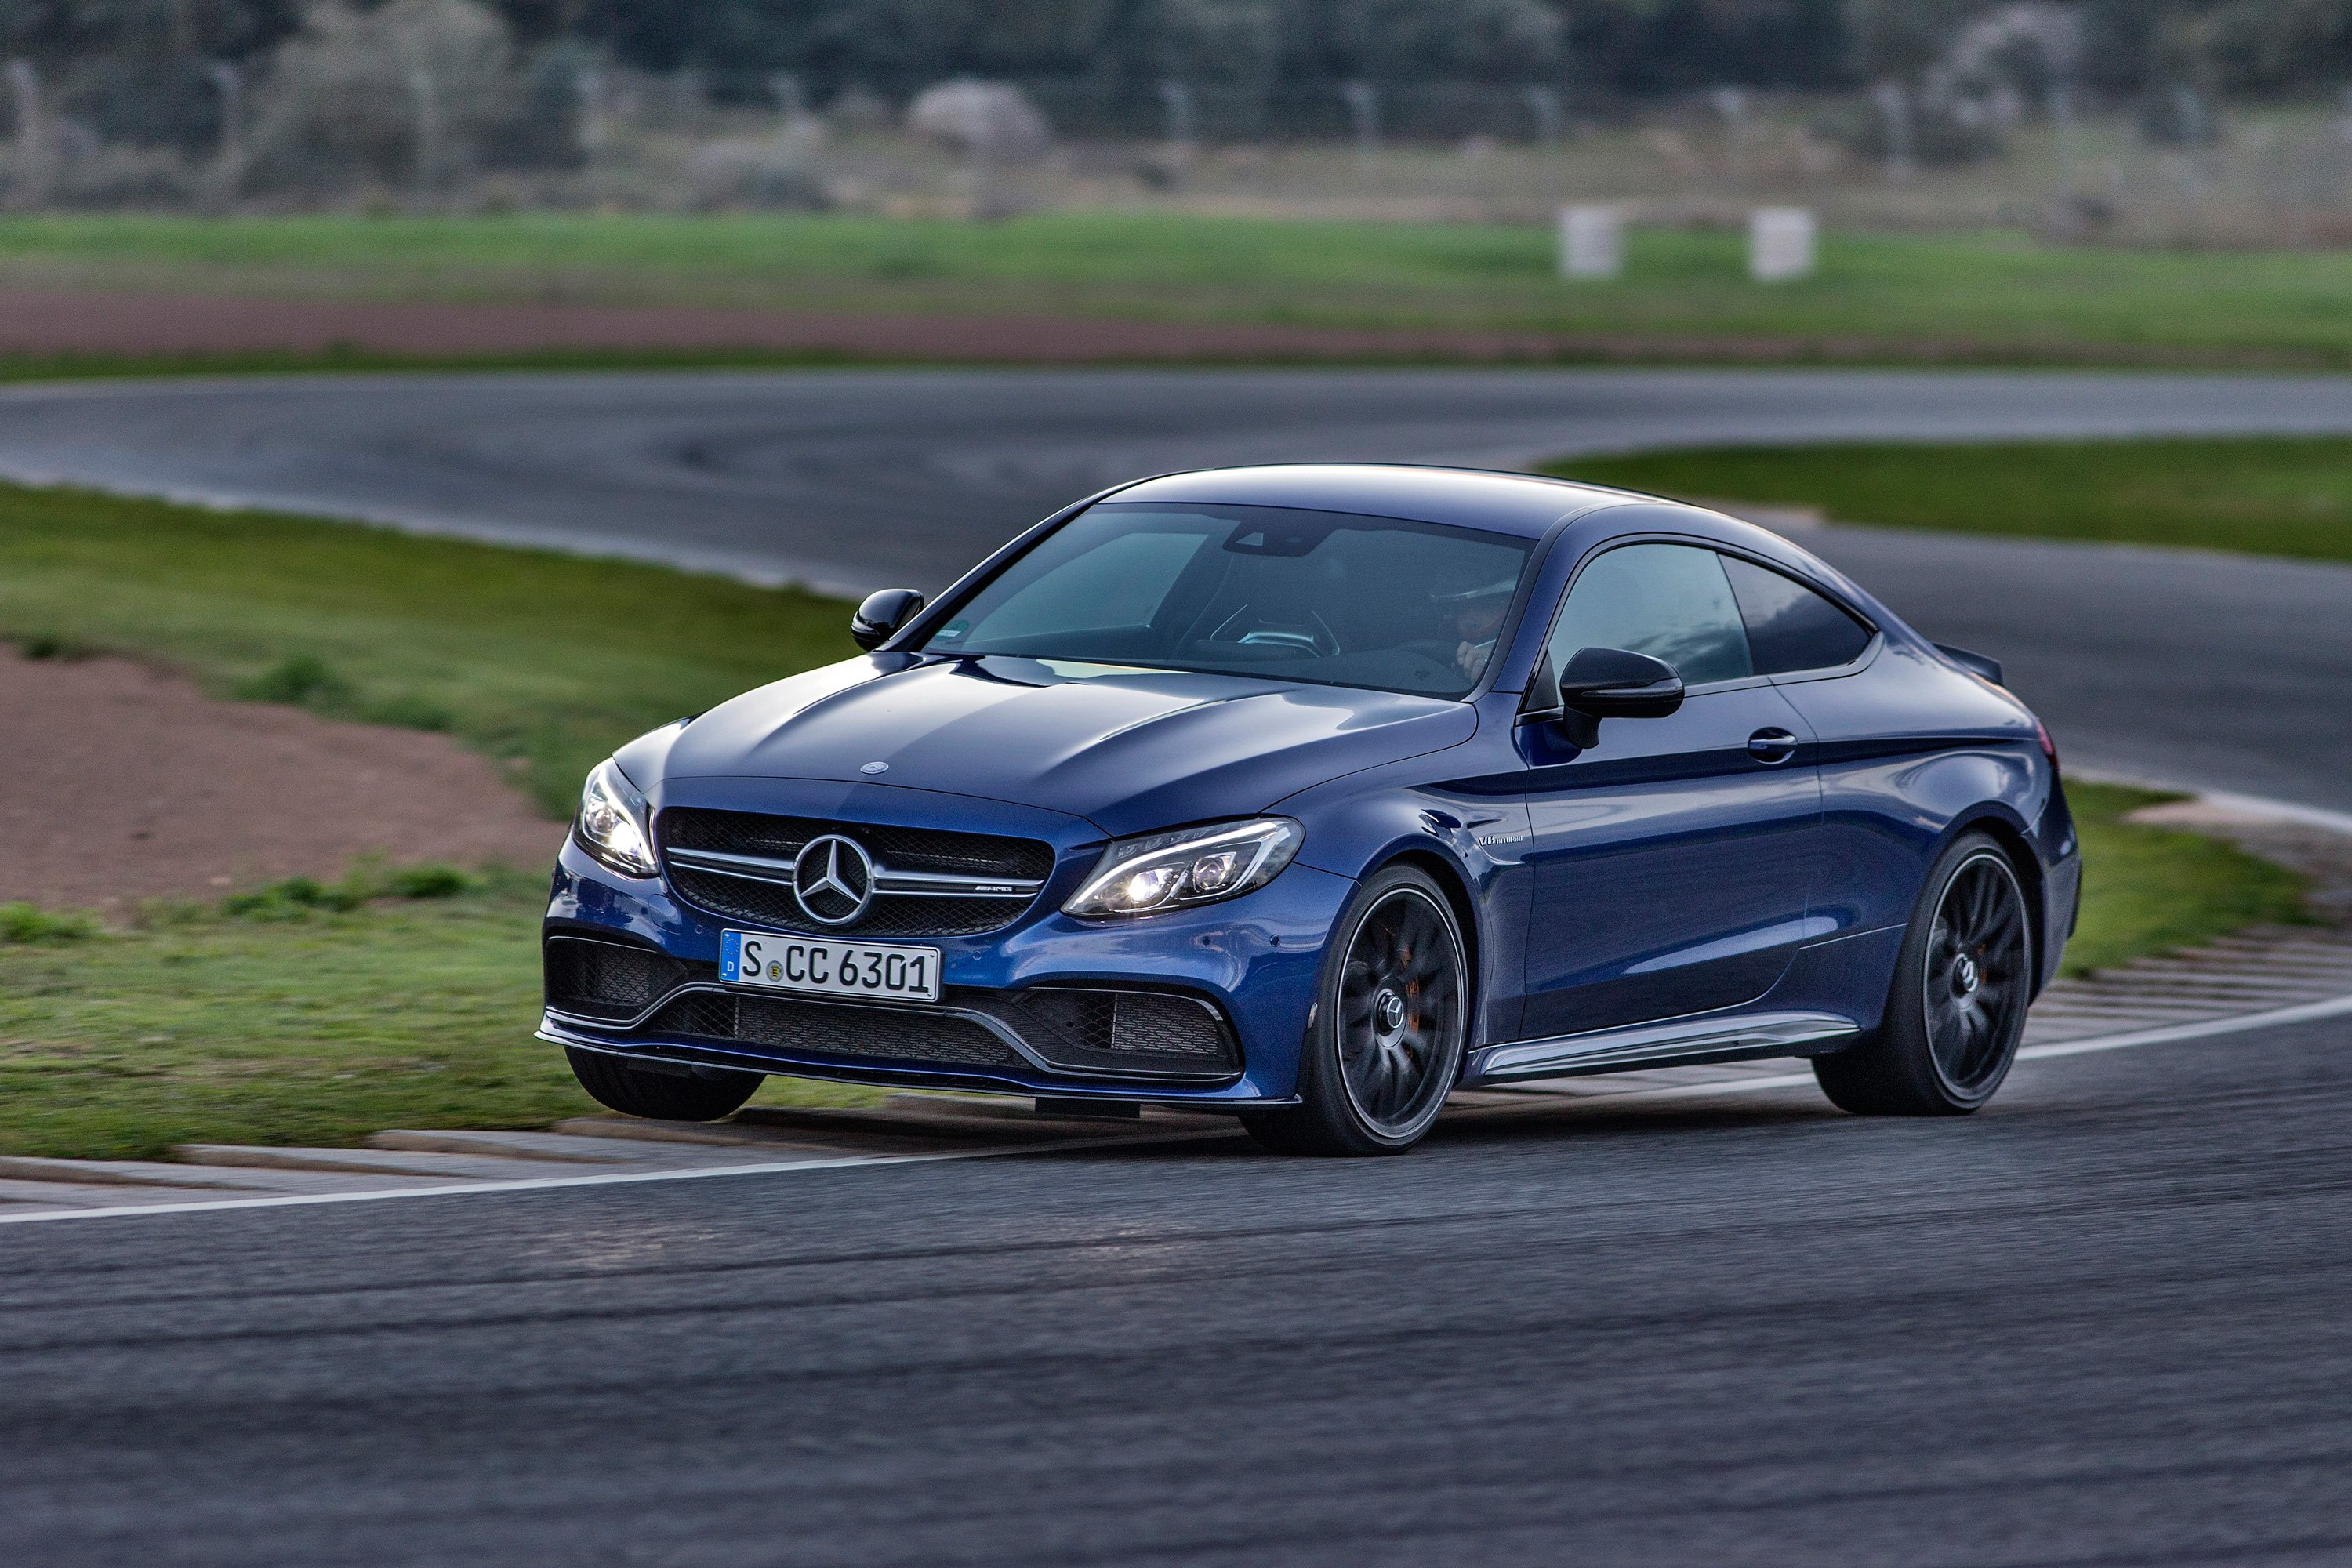 mercedes amg c63 s coupe pricing and specifications. Black Bedroom Furniture Sets. Home Design Ideas